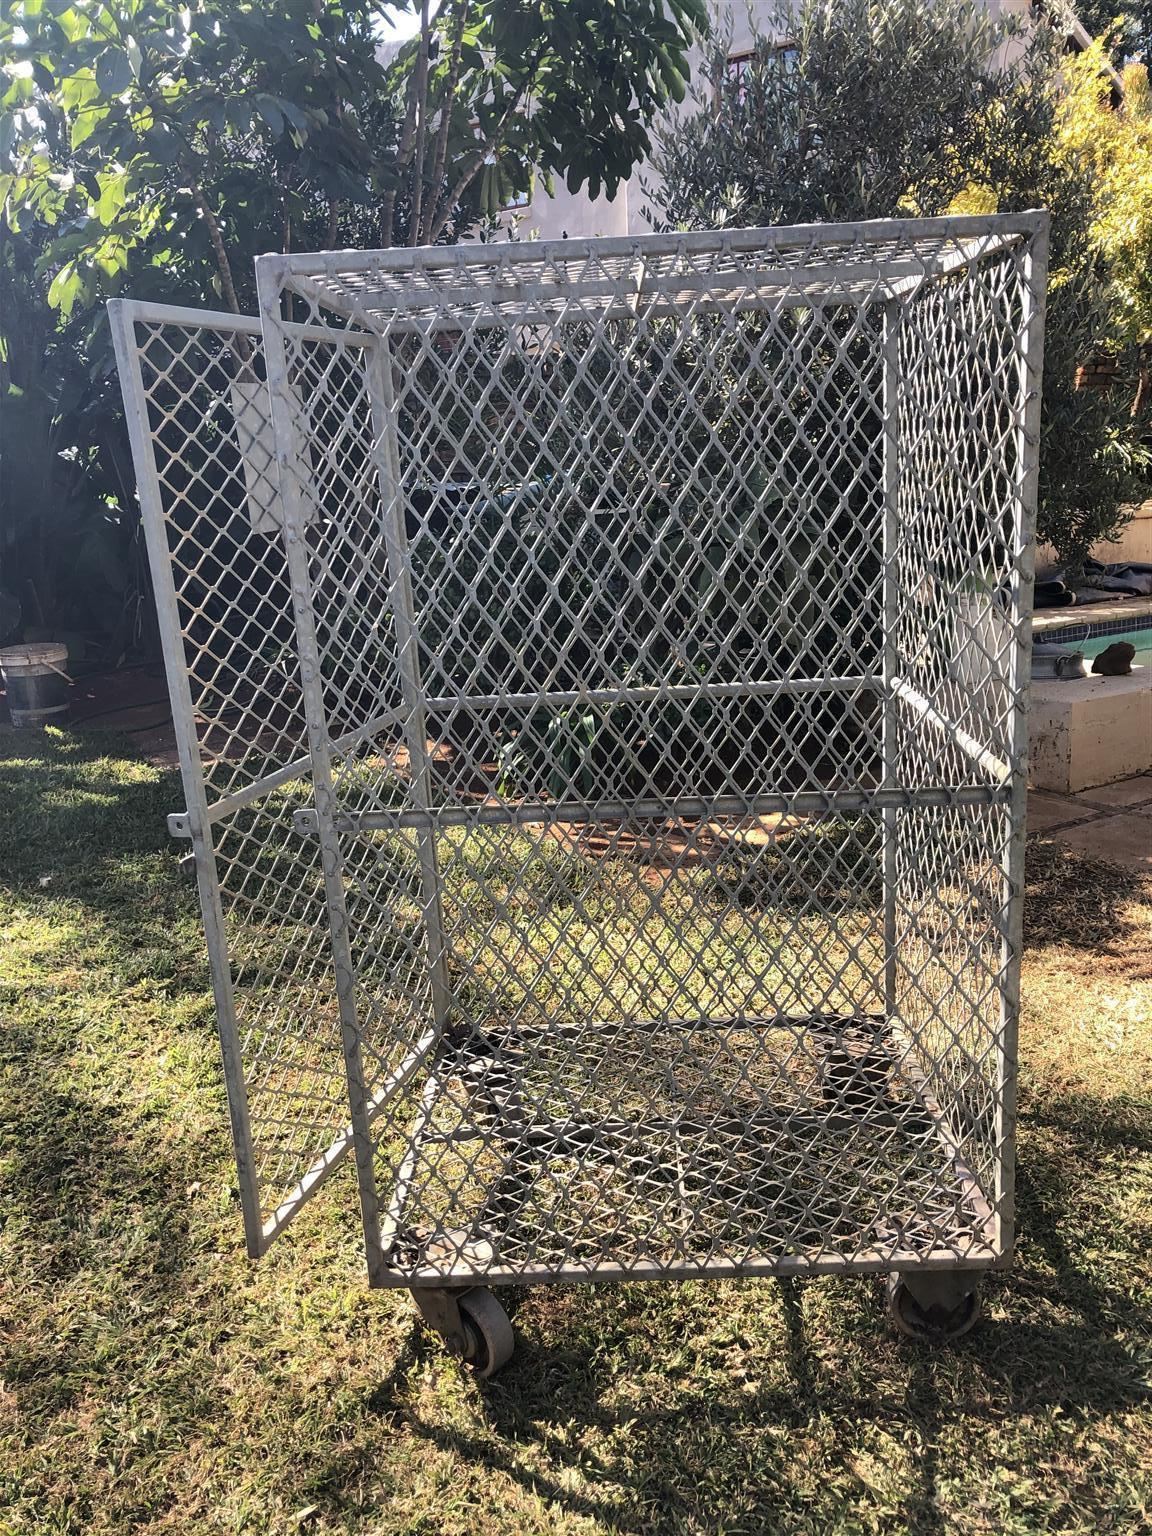 Galvanized steel rabbit cage for sale.